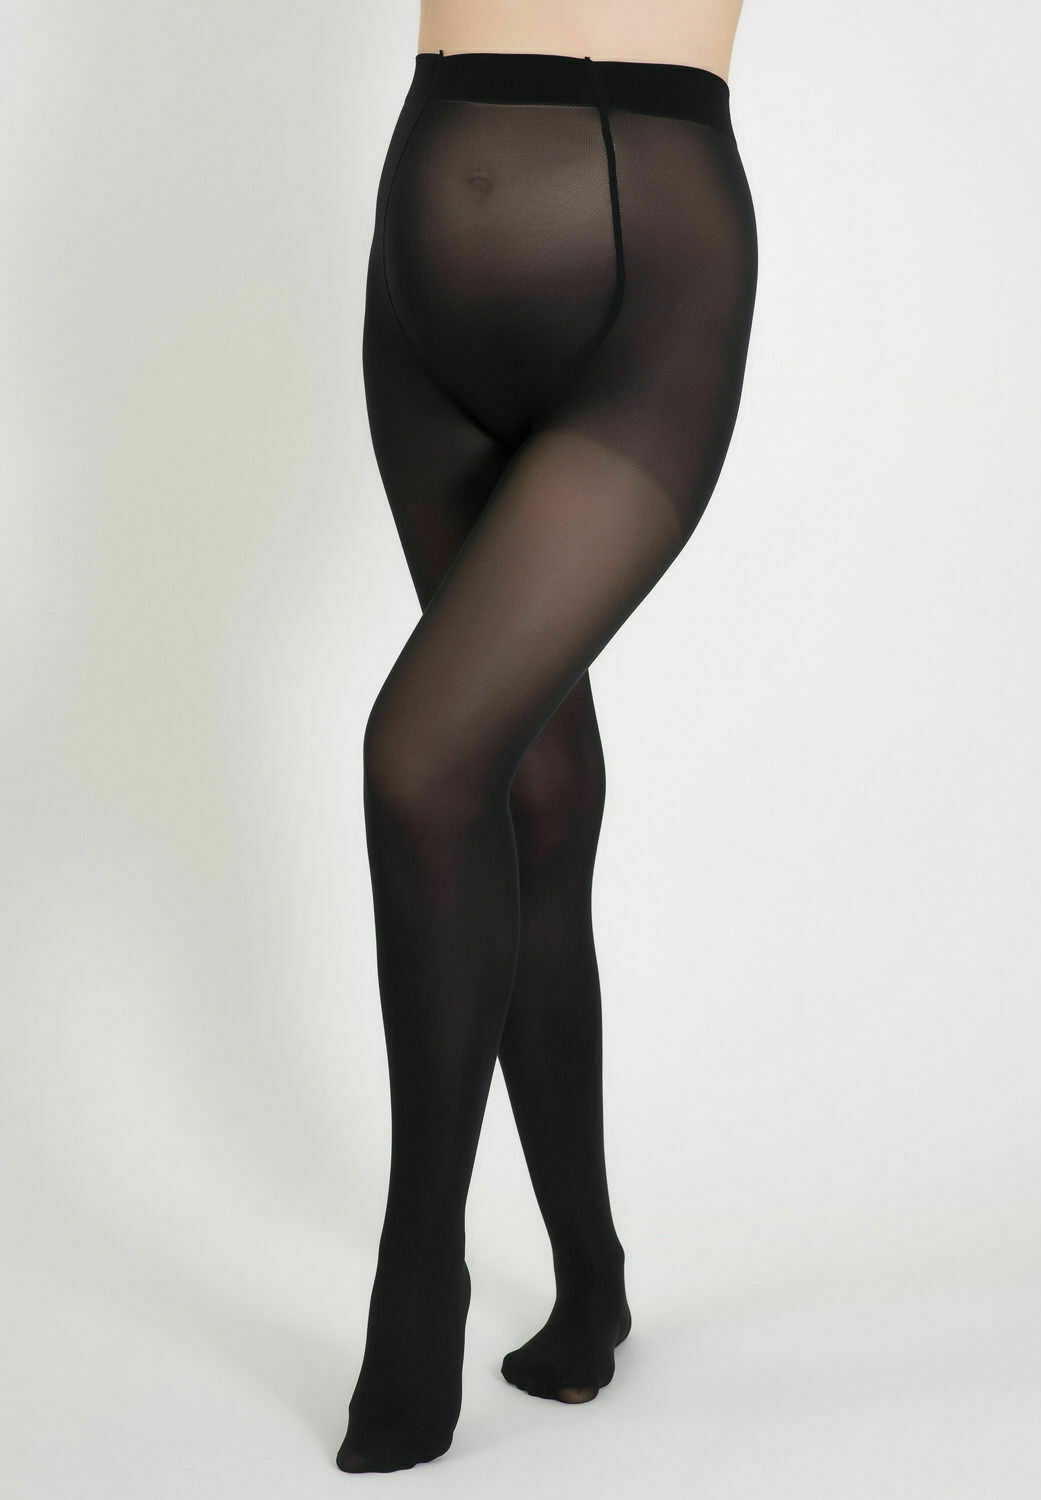 Bellissima-Women-039-s-Maternity-Tights-Black-50-den-Pregnancy-Hosiery thumbnail 7